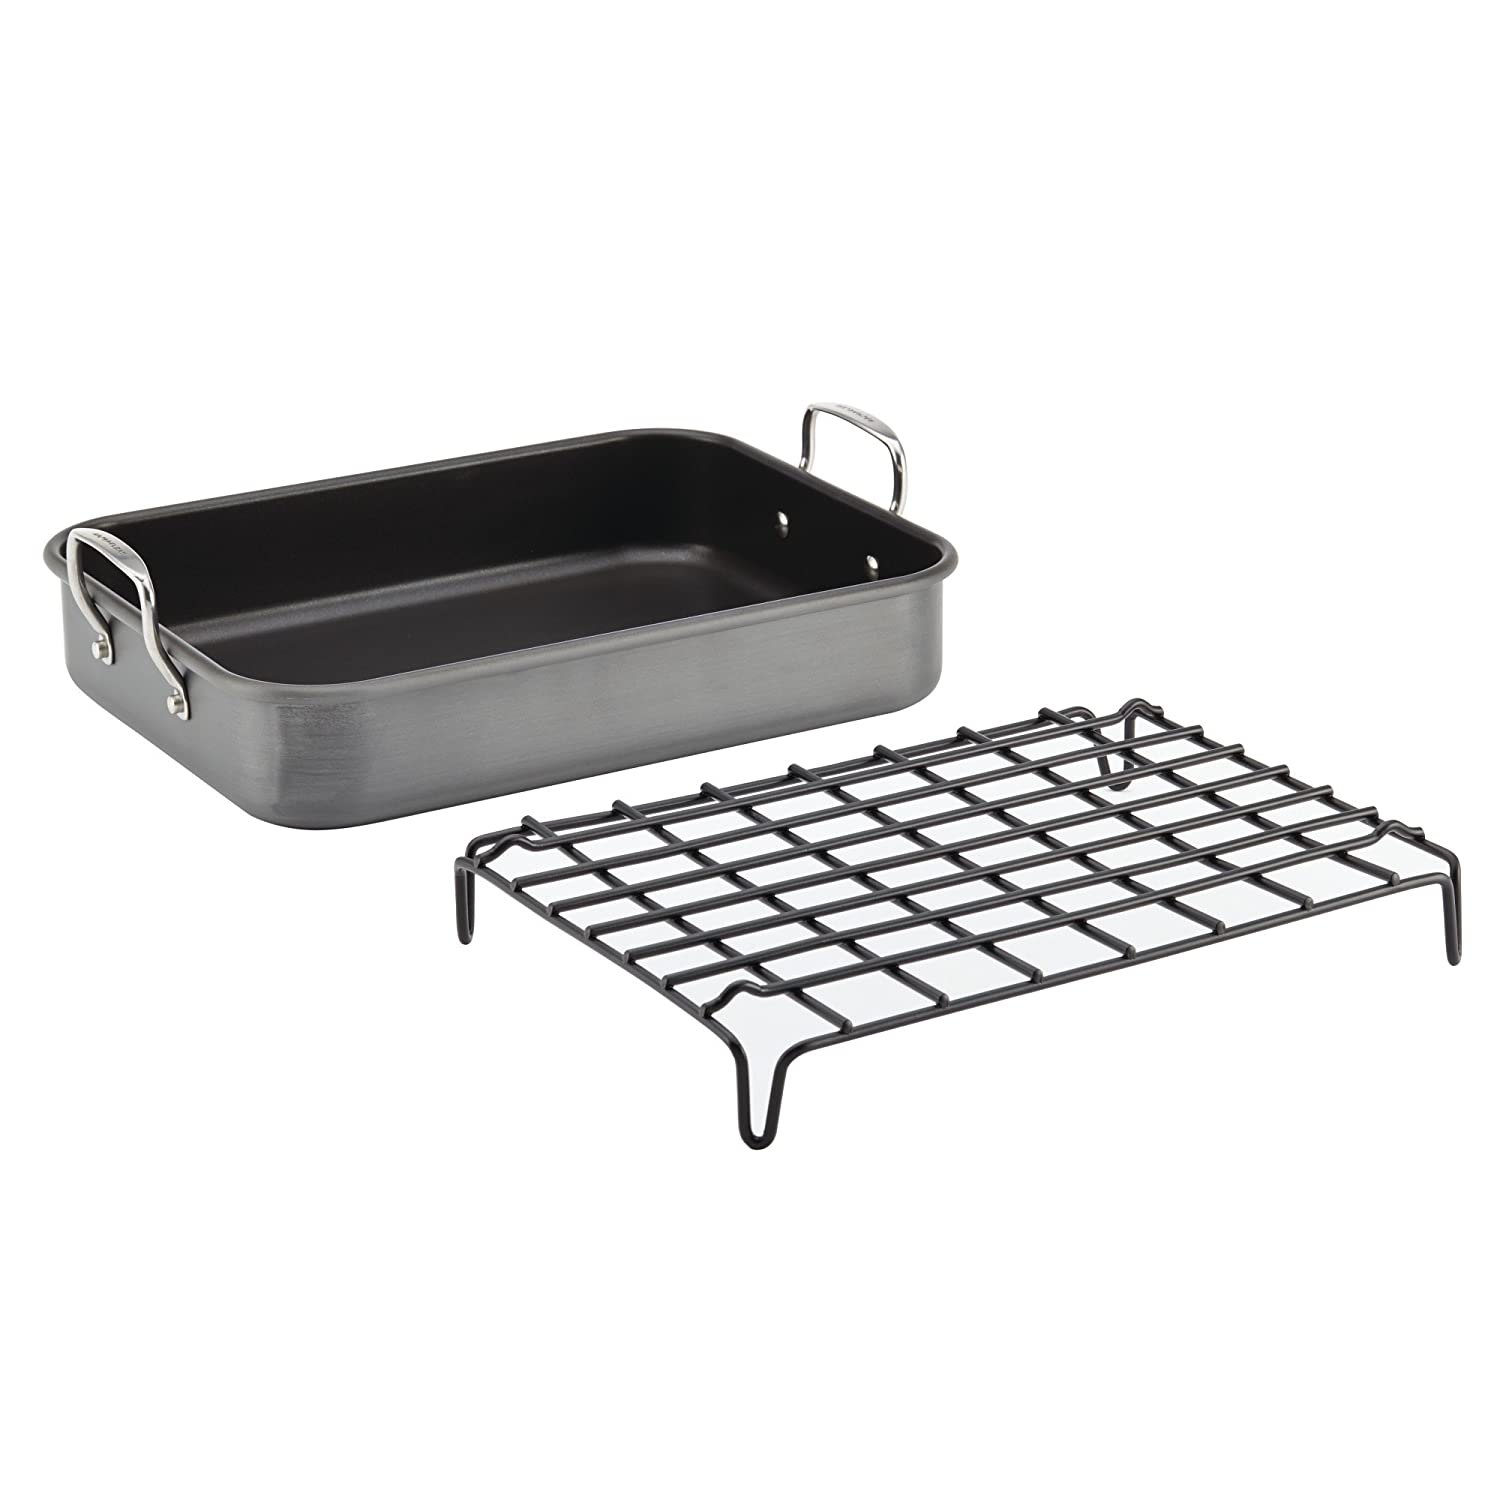 Rachael Ray Hard-Anodized Nonstick Bakeware 16-Inch by 12-Inch Roaster with Dual-Height Rack, Gray, Medium – 87657